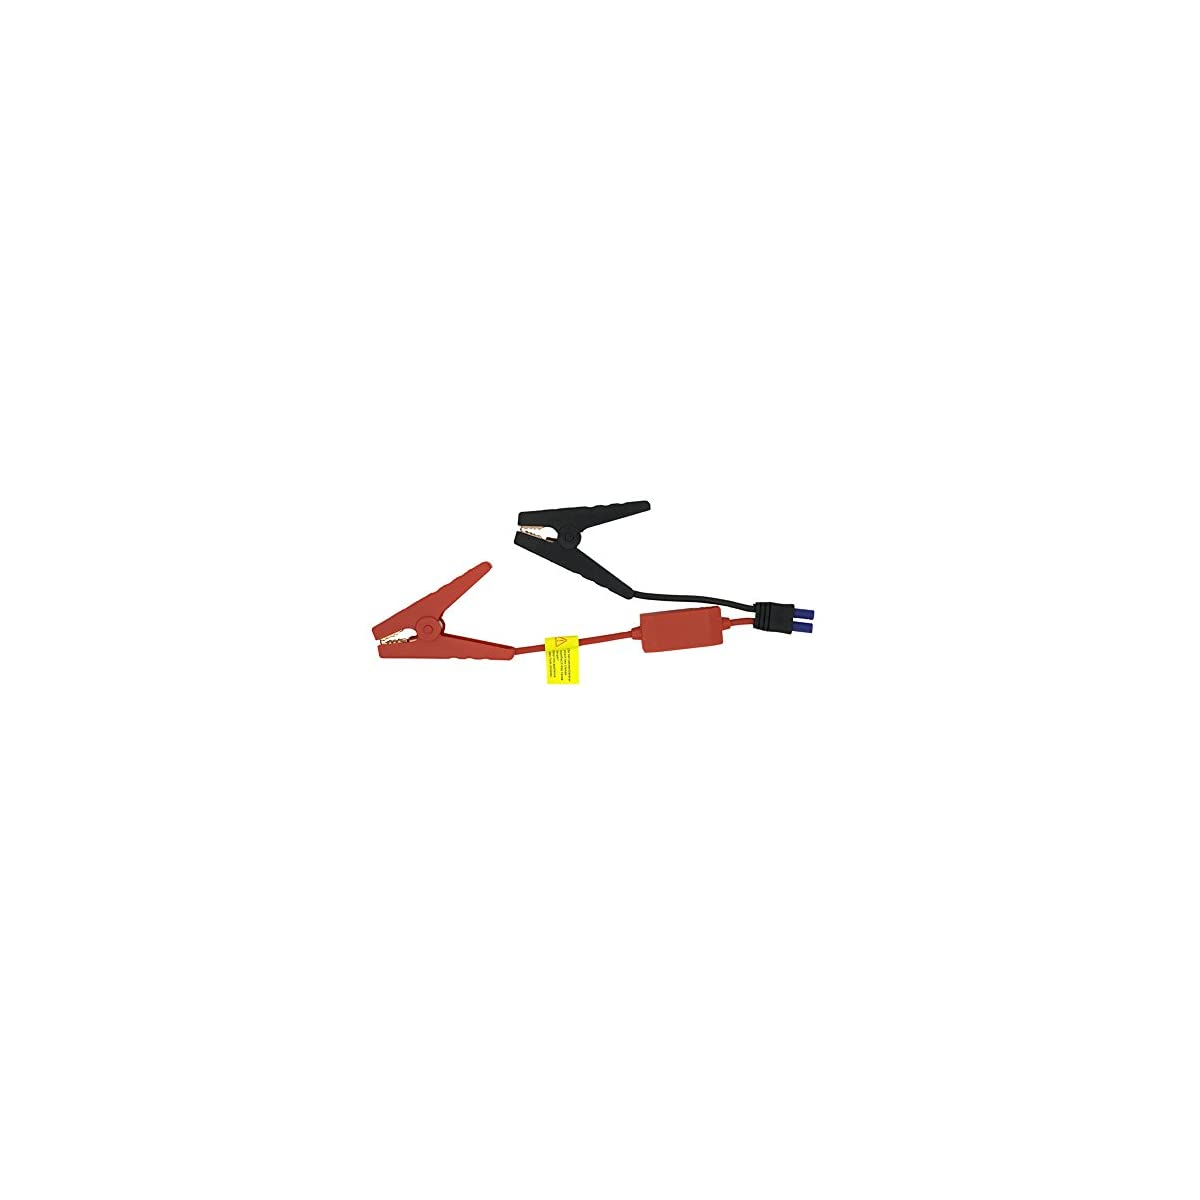 31kOum8rxvL. SS1200  - EC5 Jump Starter Qutaway Replacement EC5 Connnector Emergency Lead Jumper Cable Alligator Clamp Booster Clips For Cars